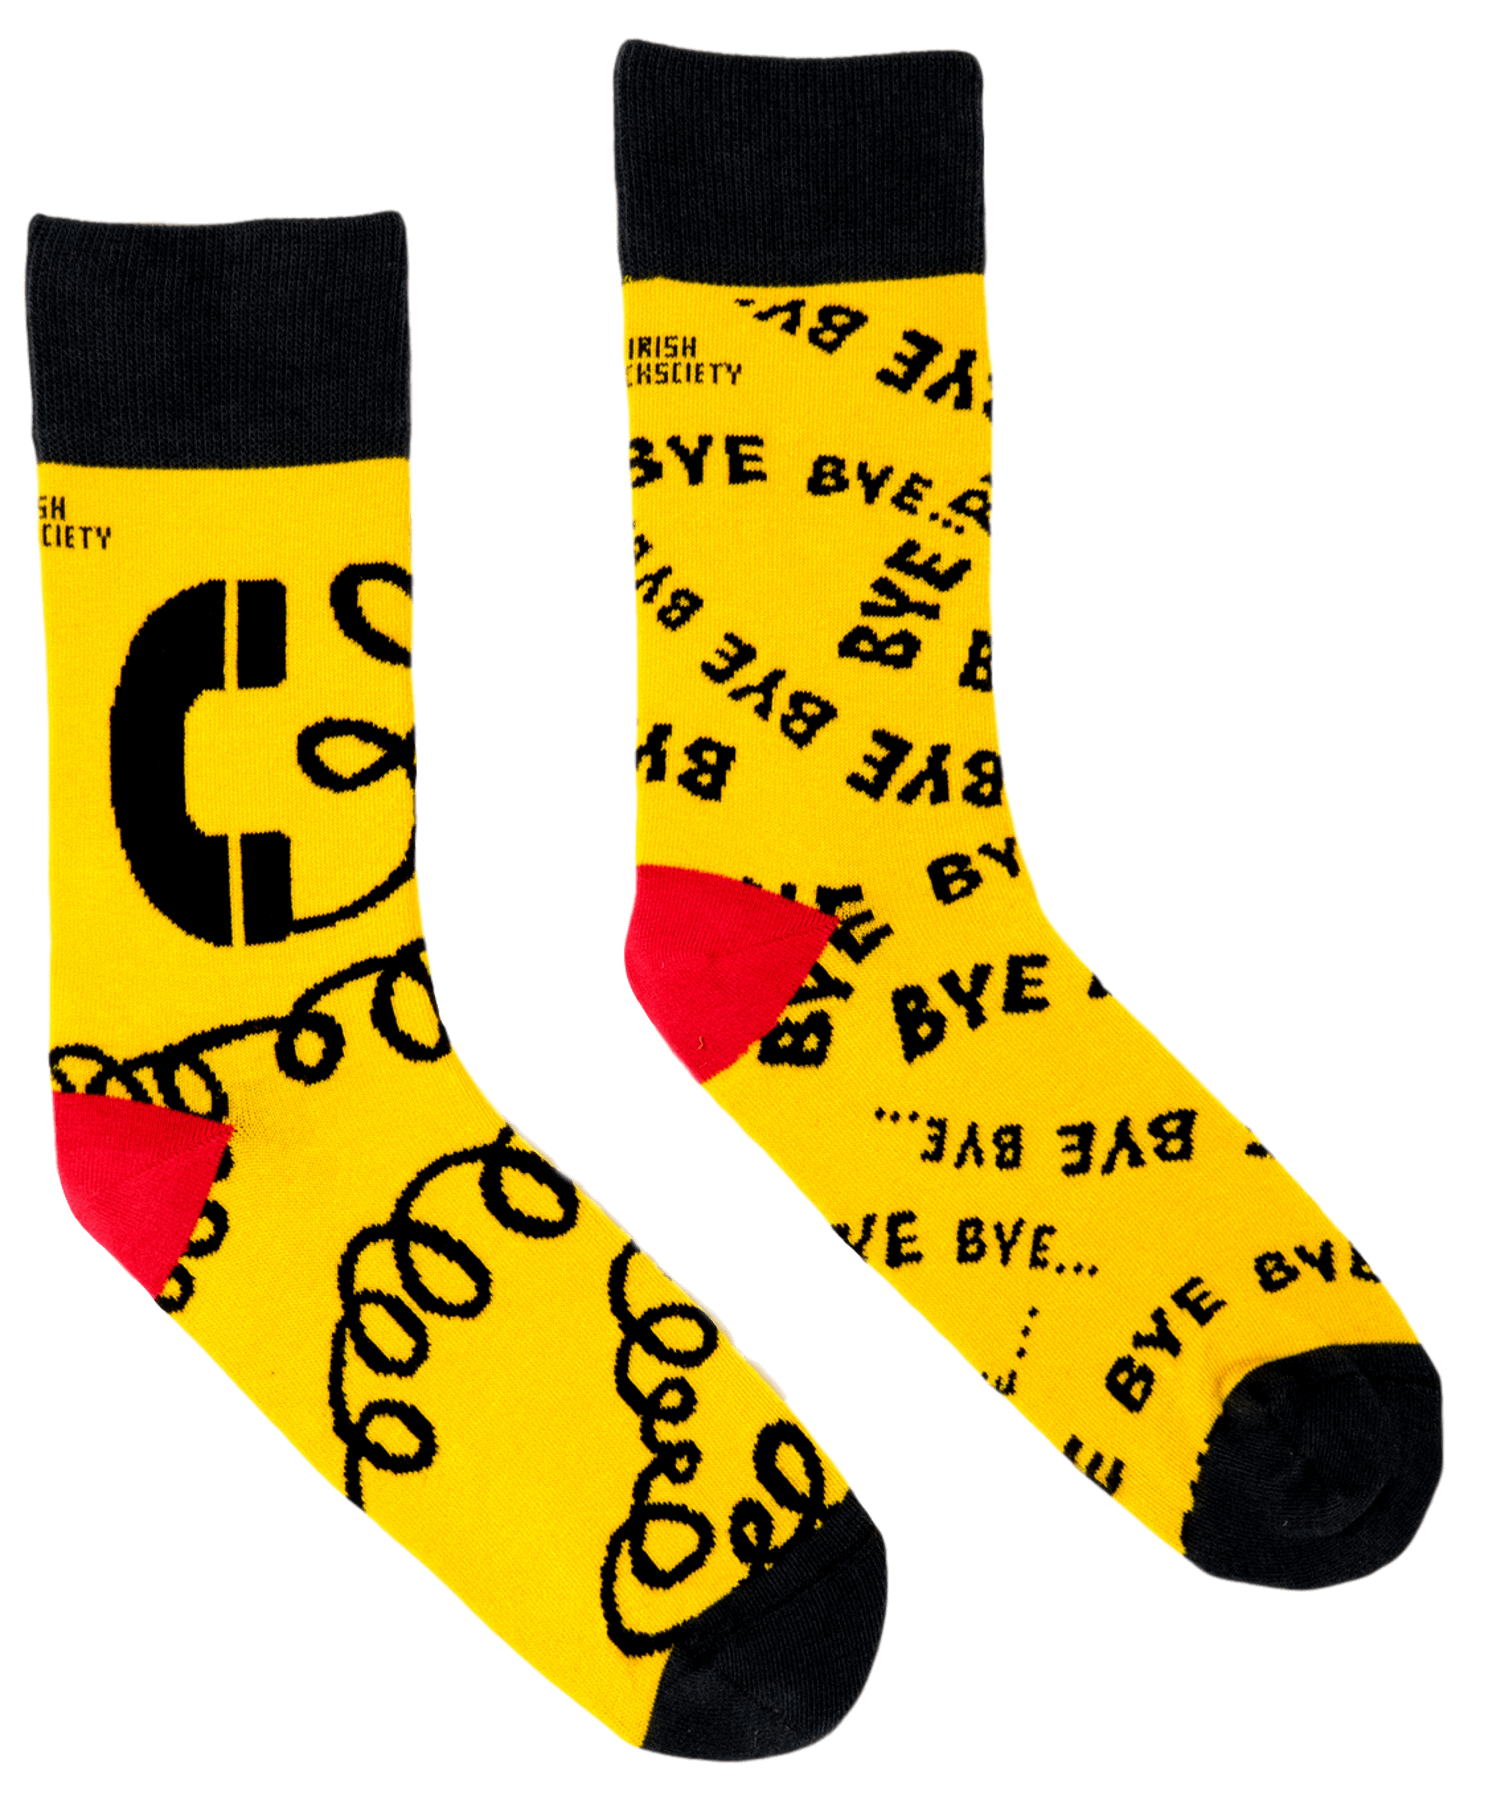 Socks - Bye Bye Bye - [Irish Socksciety] - Socks & Slippers - Irish Gifts